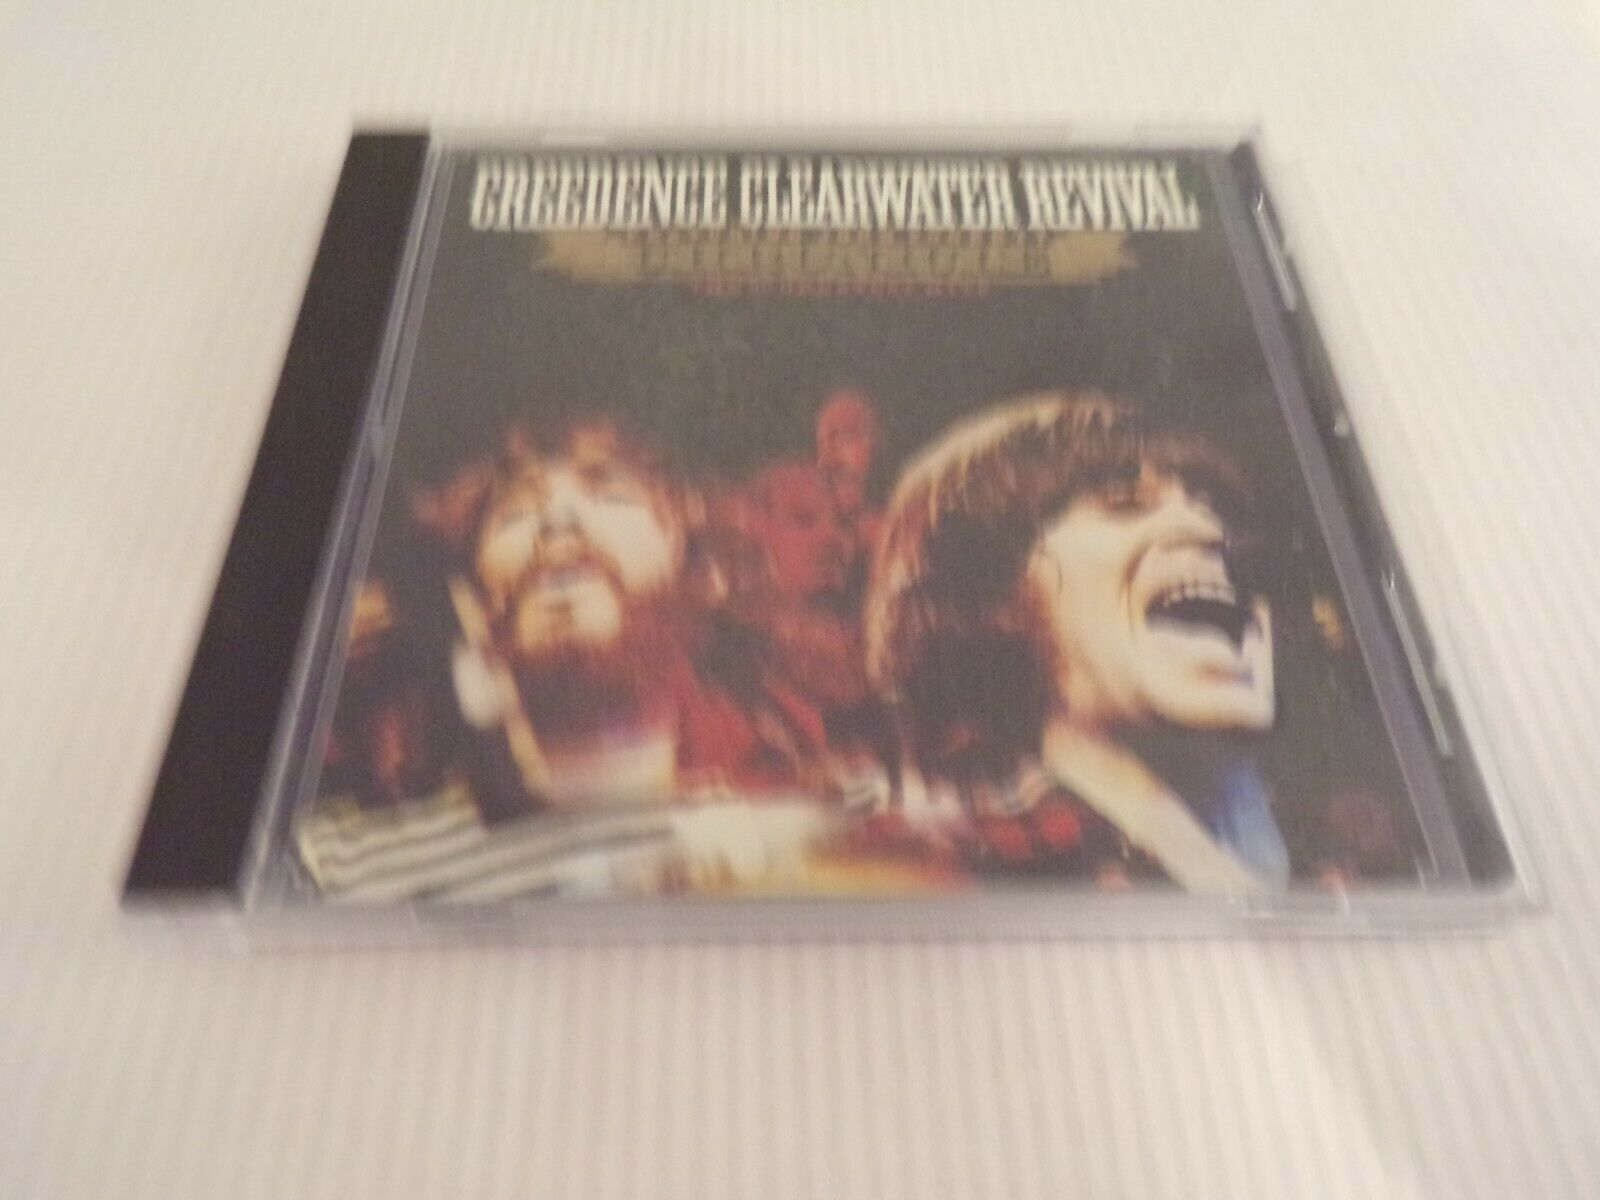 Primary image for Chronicle, Vol. 1 [CD] by Creedence Clearwater Revival  1991